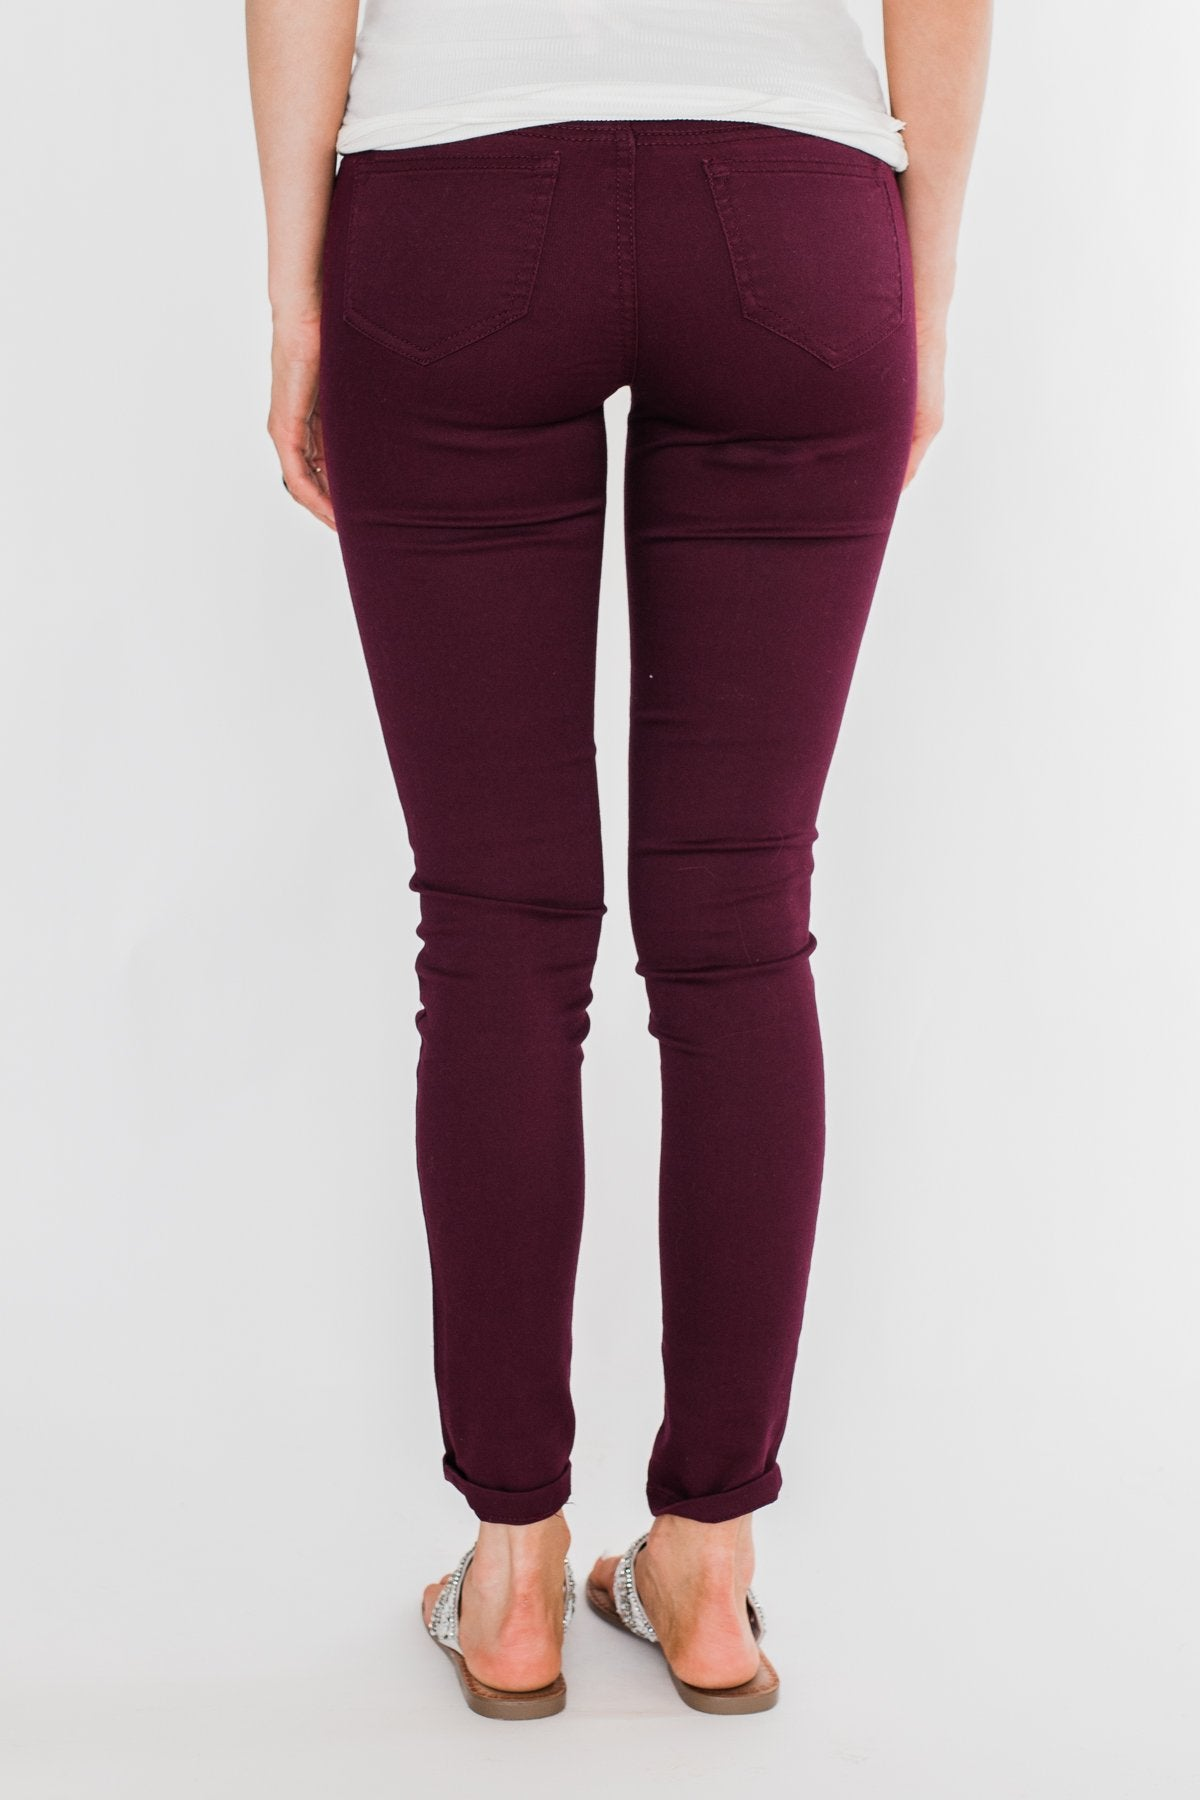 C'est Toi Non Distressed Colored Skinnies- Dark Burgundy